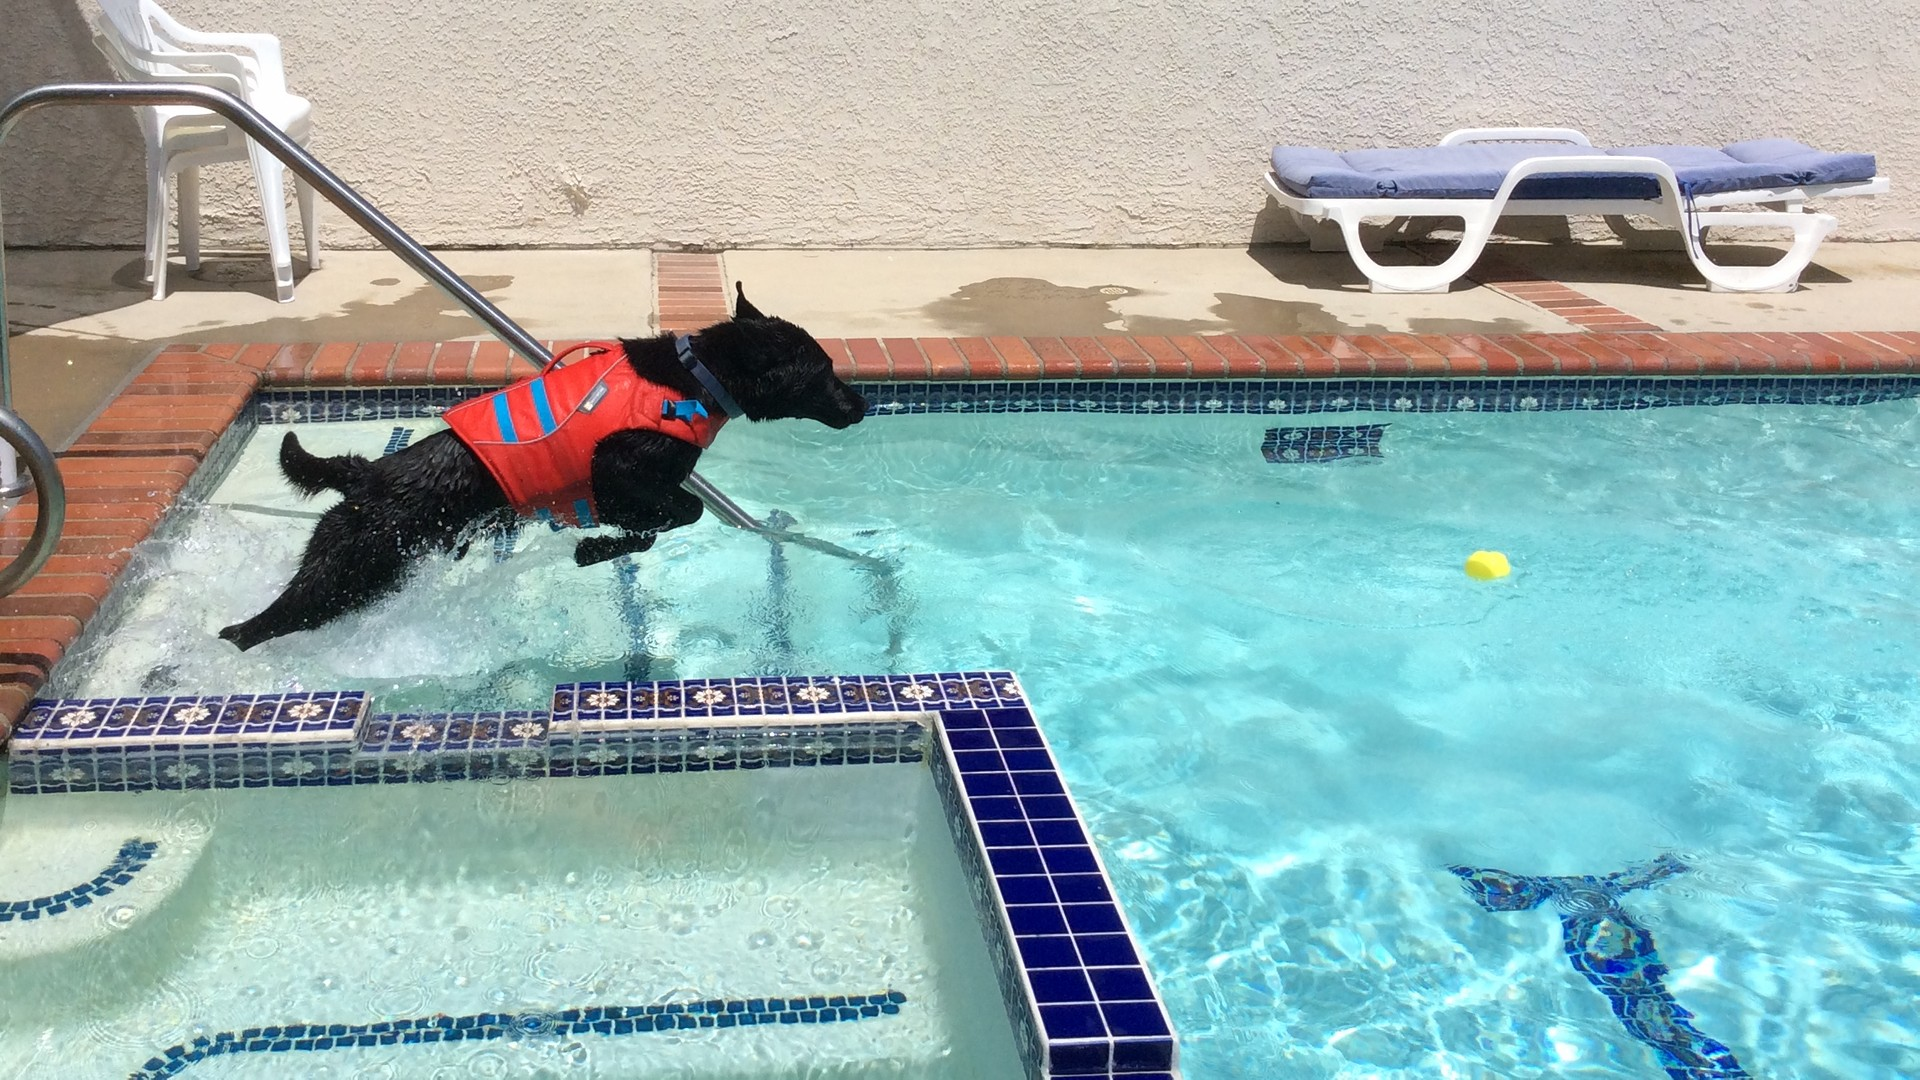 Macklin jumping into the pool